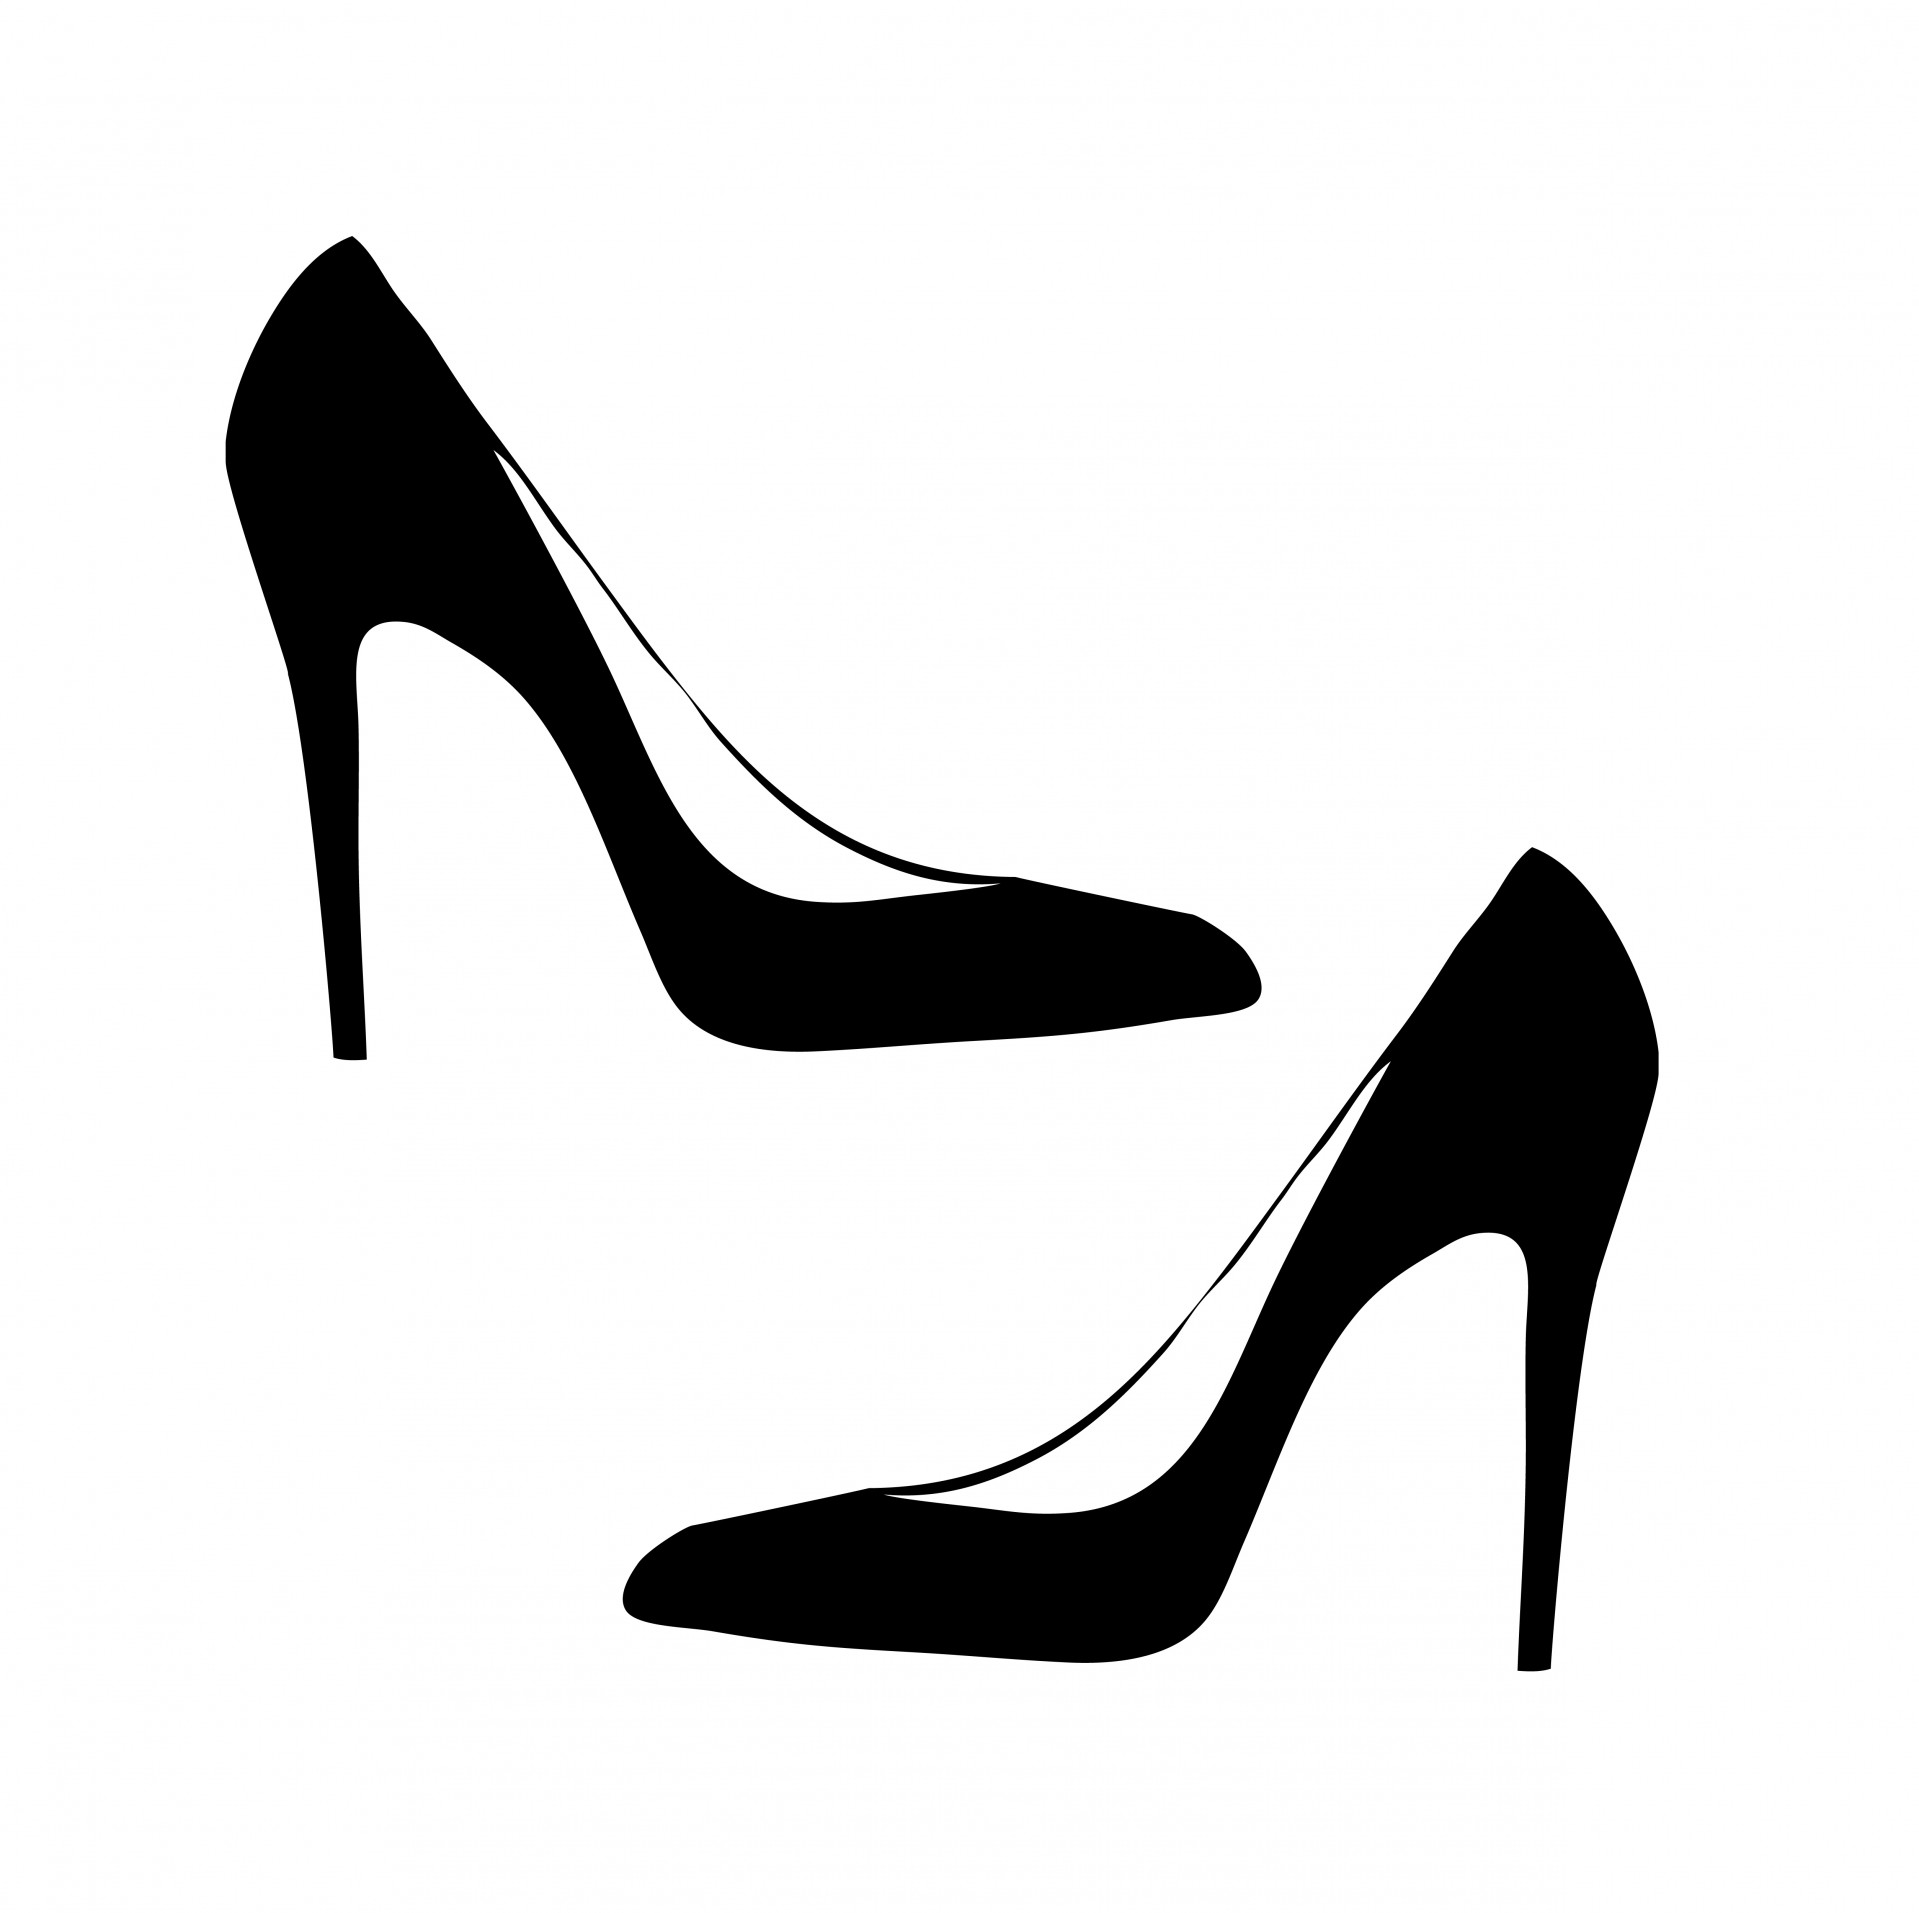 Woman shoes clipart